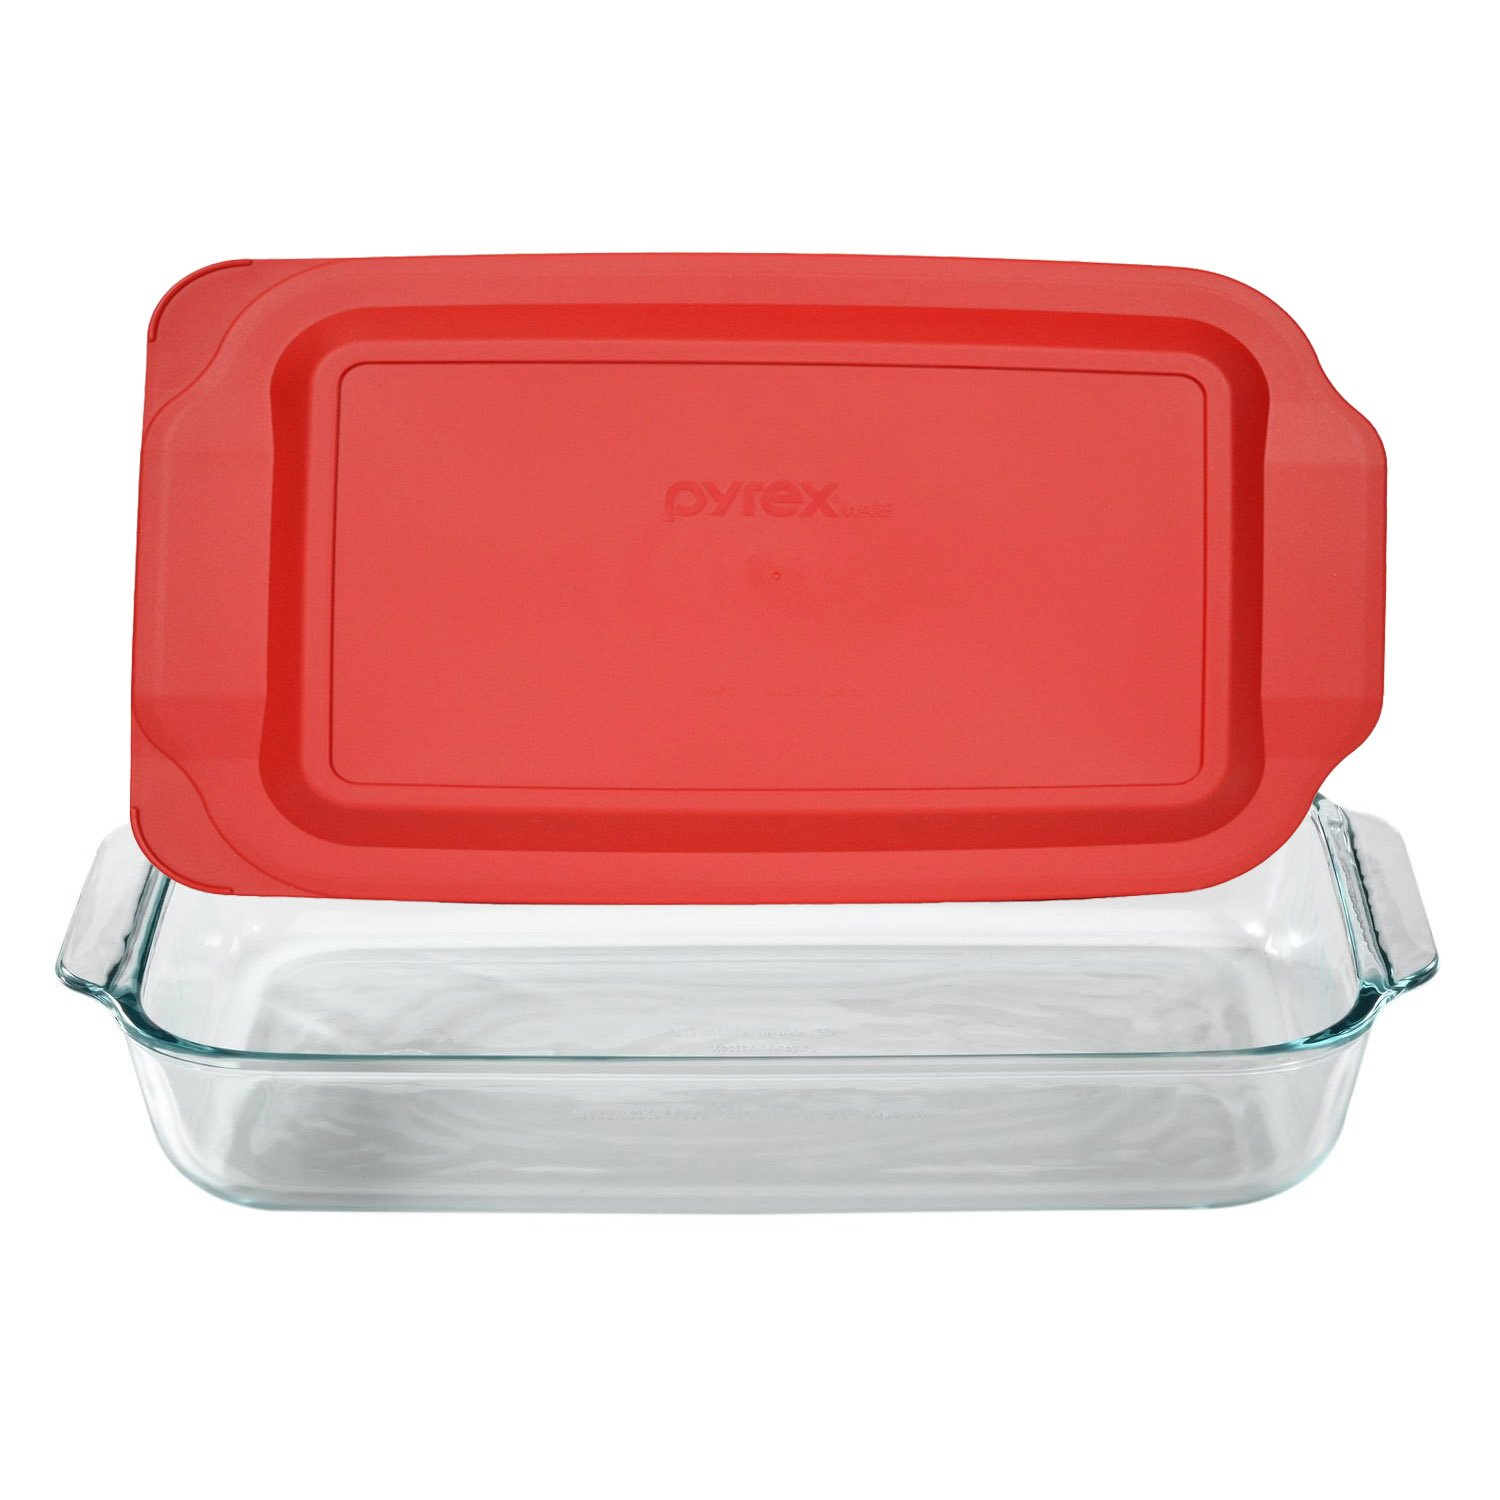 Pyrex 3 Quart 9x13 Glass Oblong Baking Dish with Lid